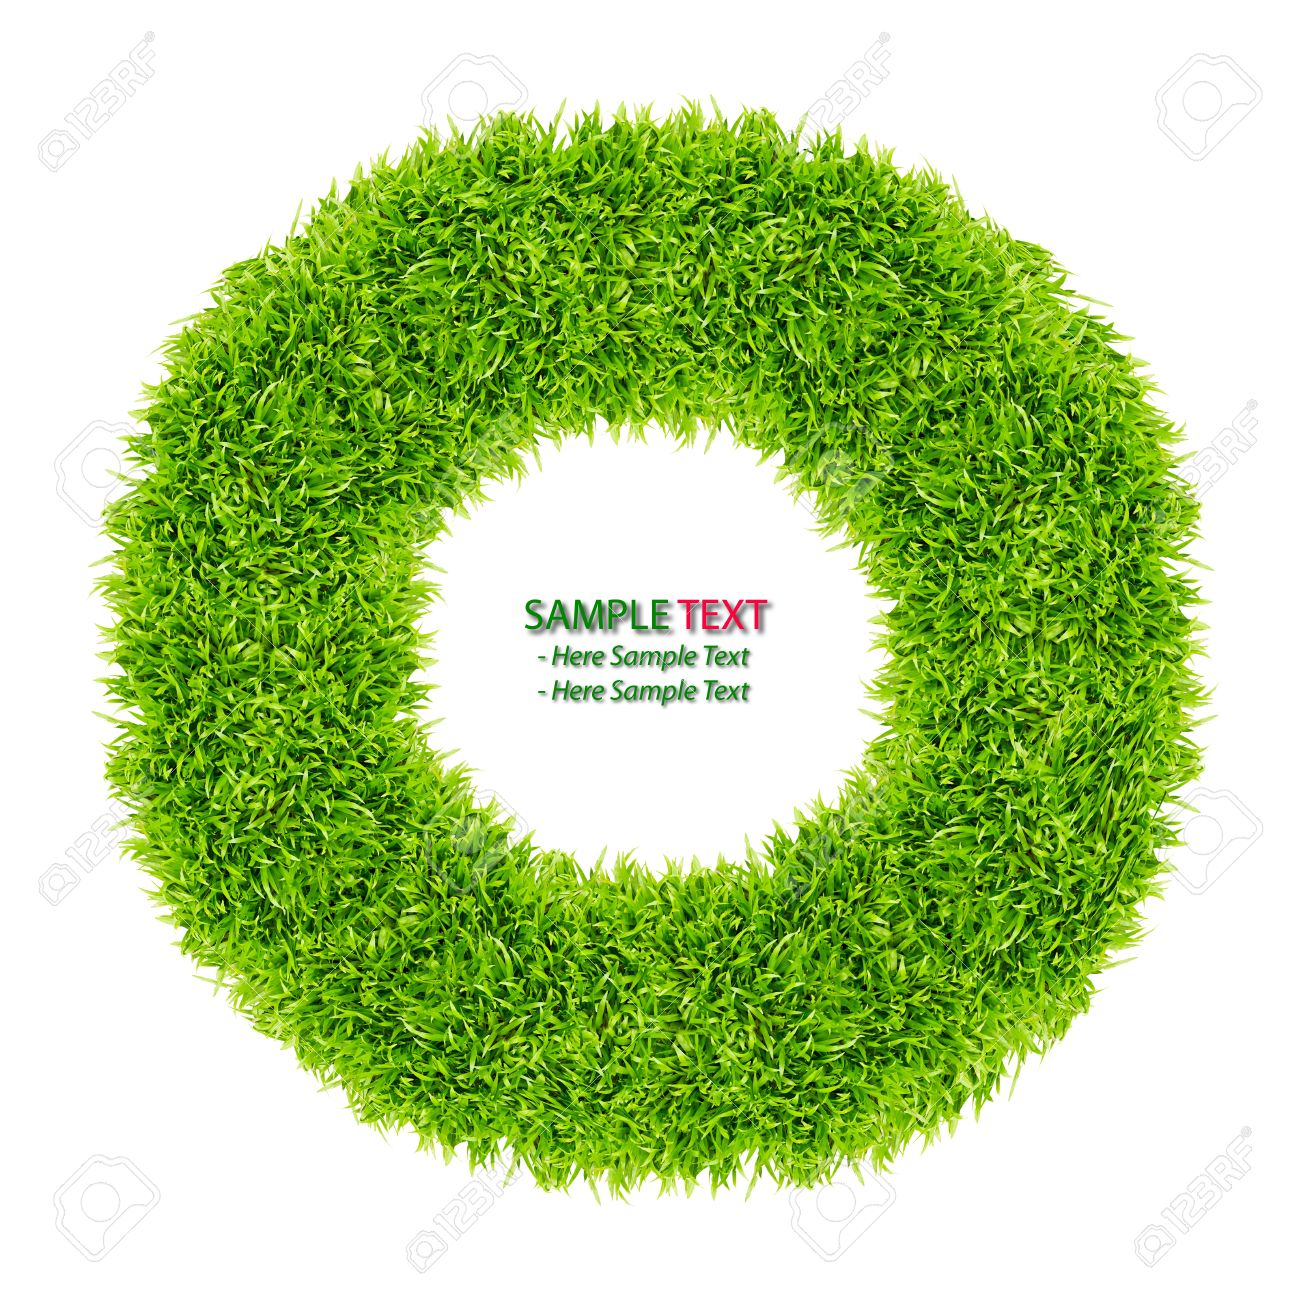 green grass donut frame isolated on white background Stock Photo - 8428665